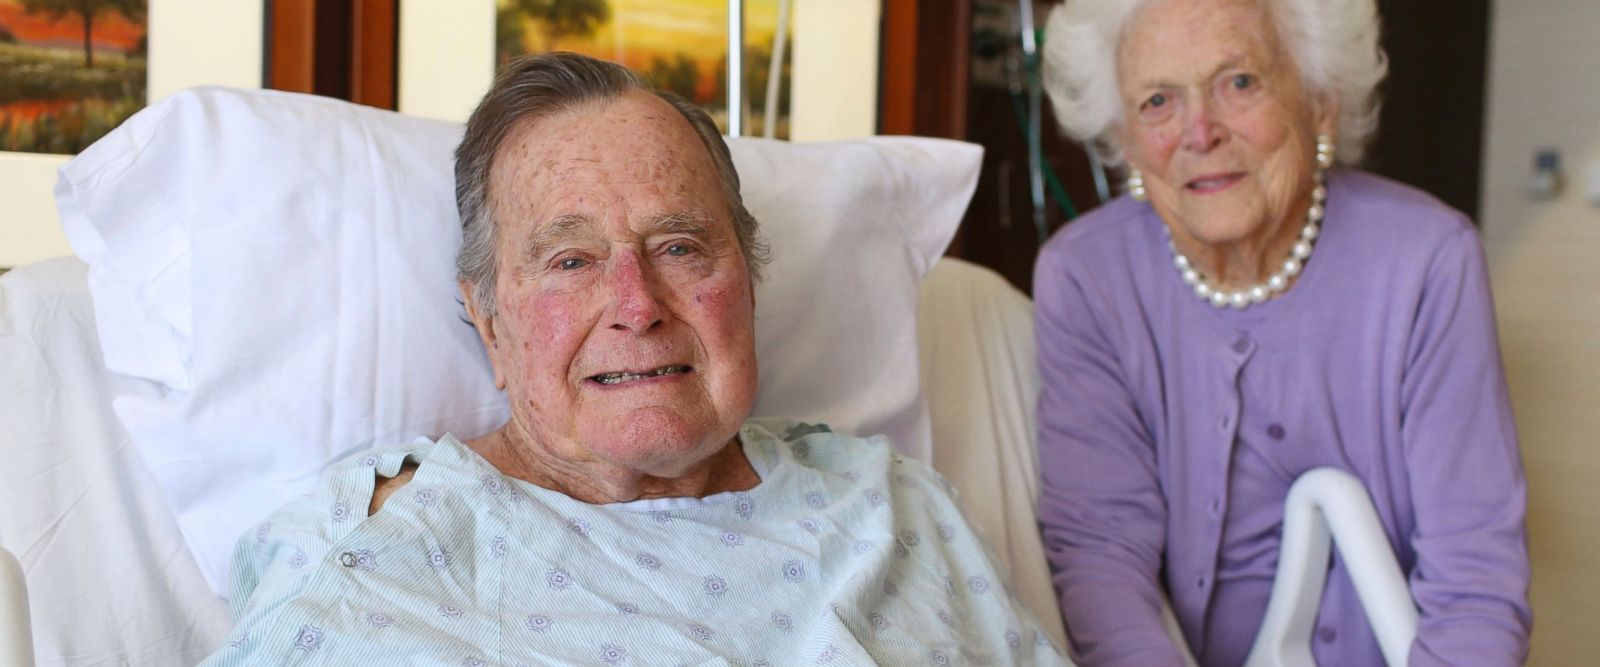 Bush Recovering From Pneumonia